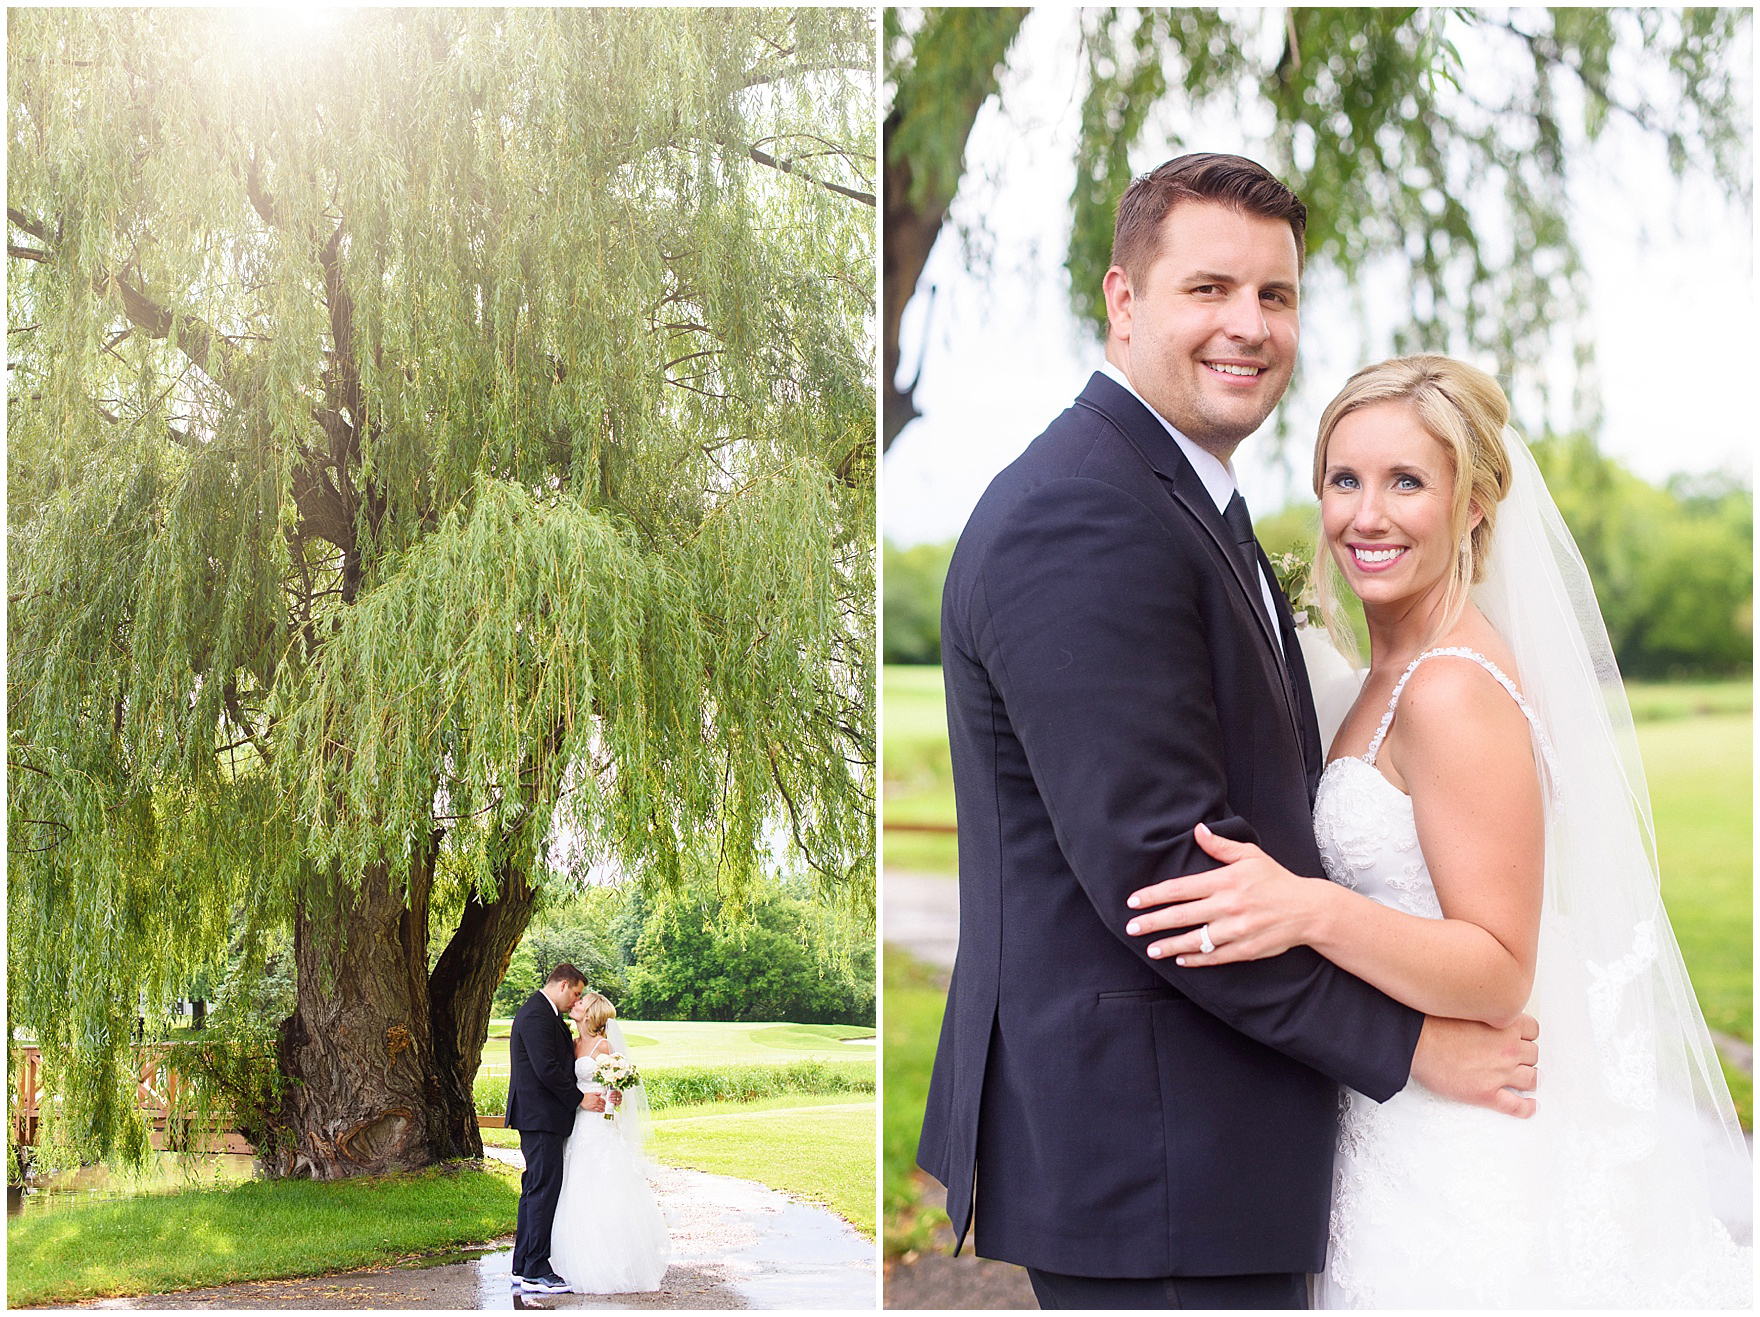 A bride and groom smile during their Itasca Country Club Illinois wedding.